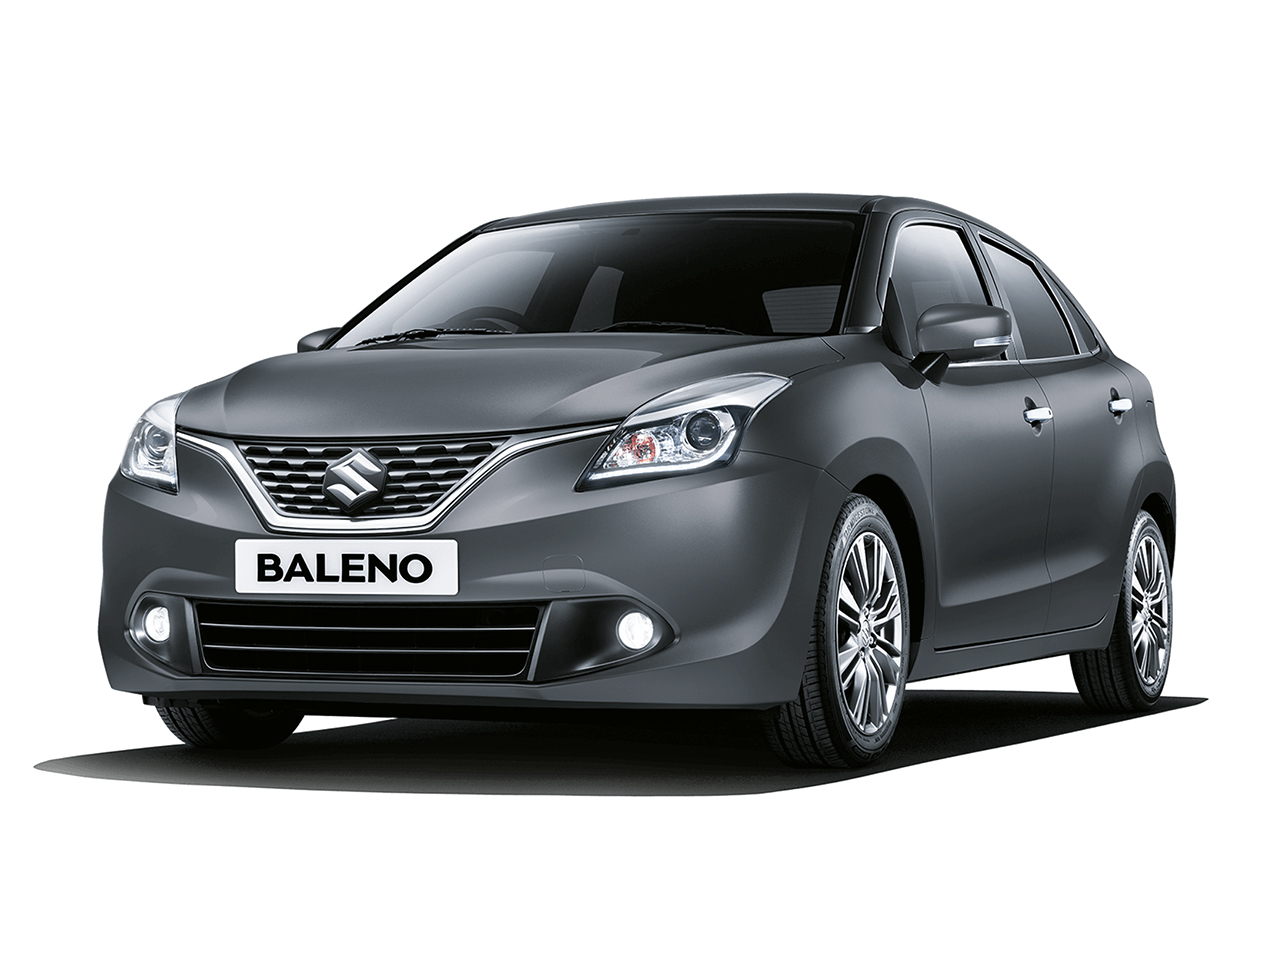 All Types baleno car images : 2017 Suzuki Baleno Prices in Saudi Arabia, Gulf Specs & Reviews ...